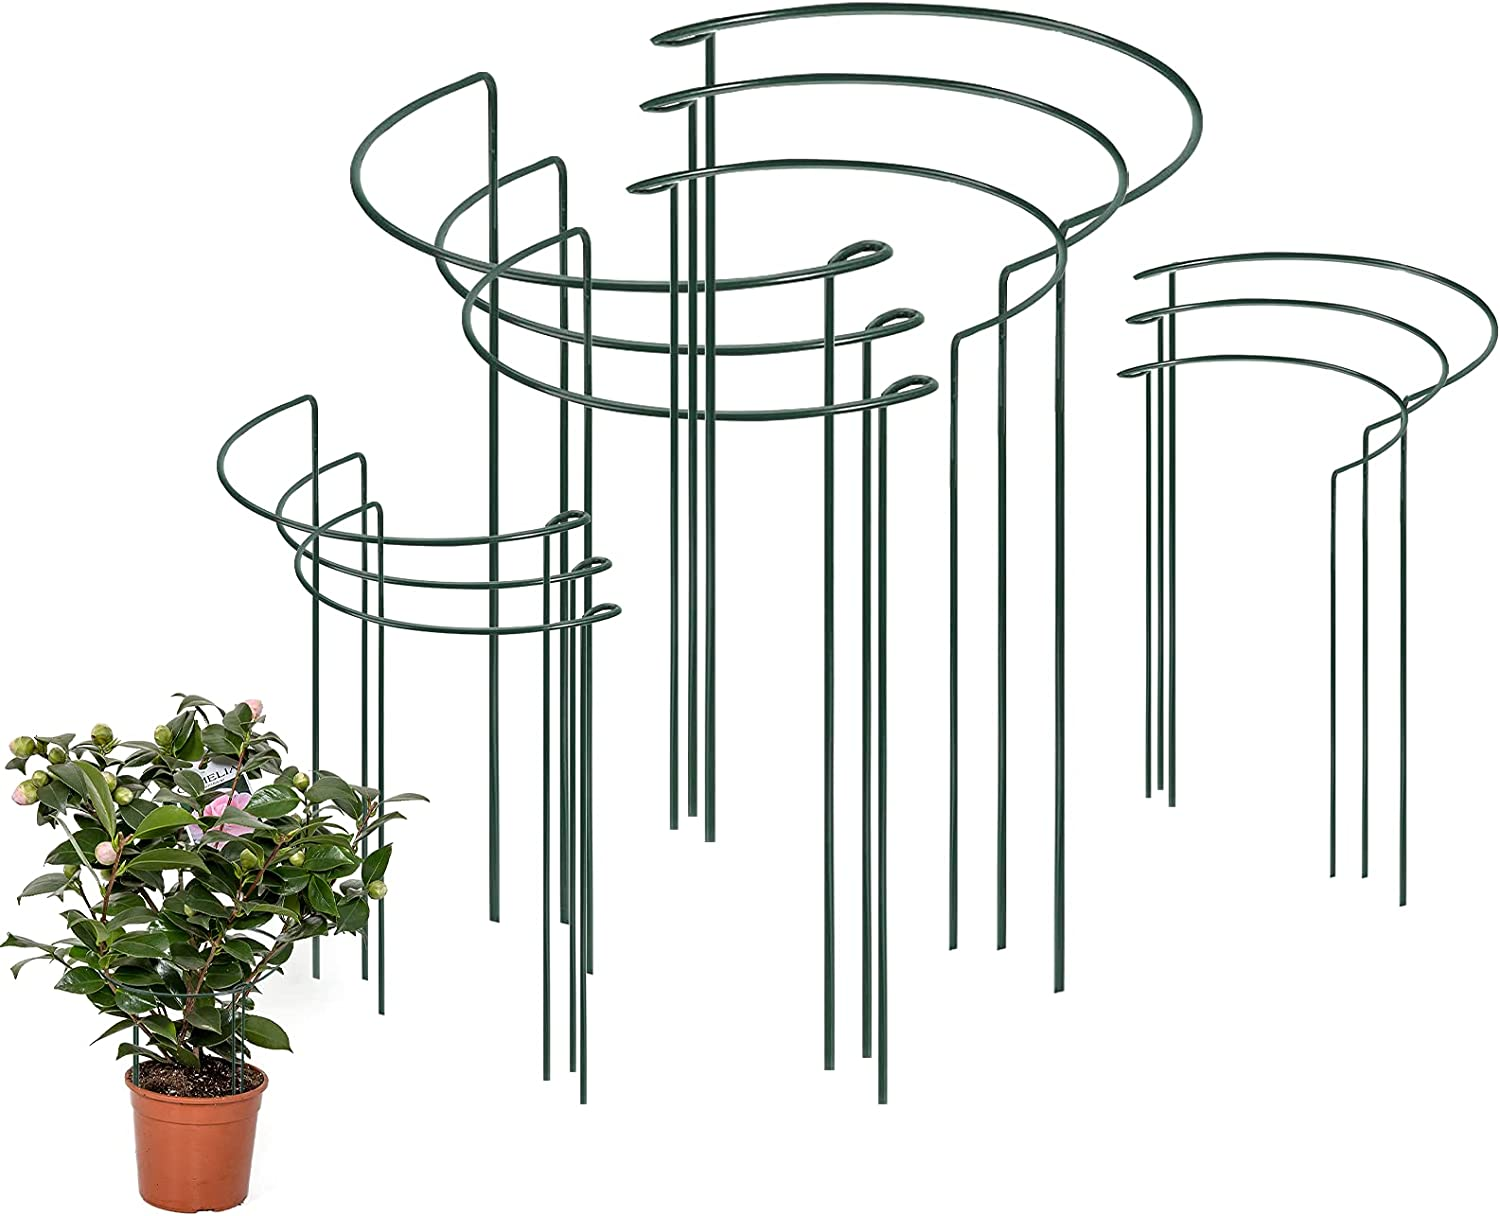 Keelion 12 Pack Plant Support Metal Spring new work Fixed price for sale one after another Garden Green Stakes